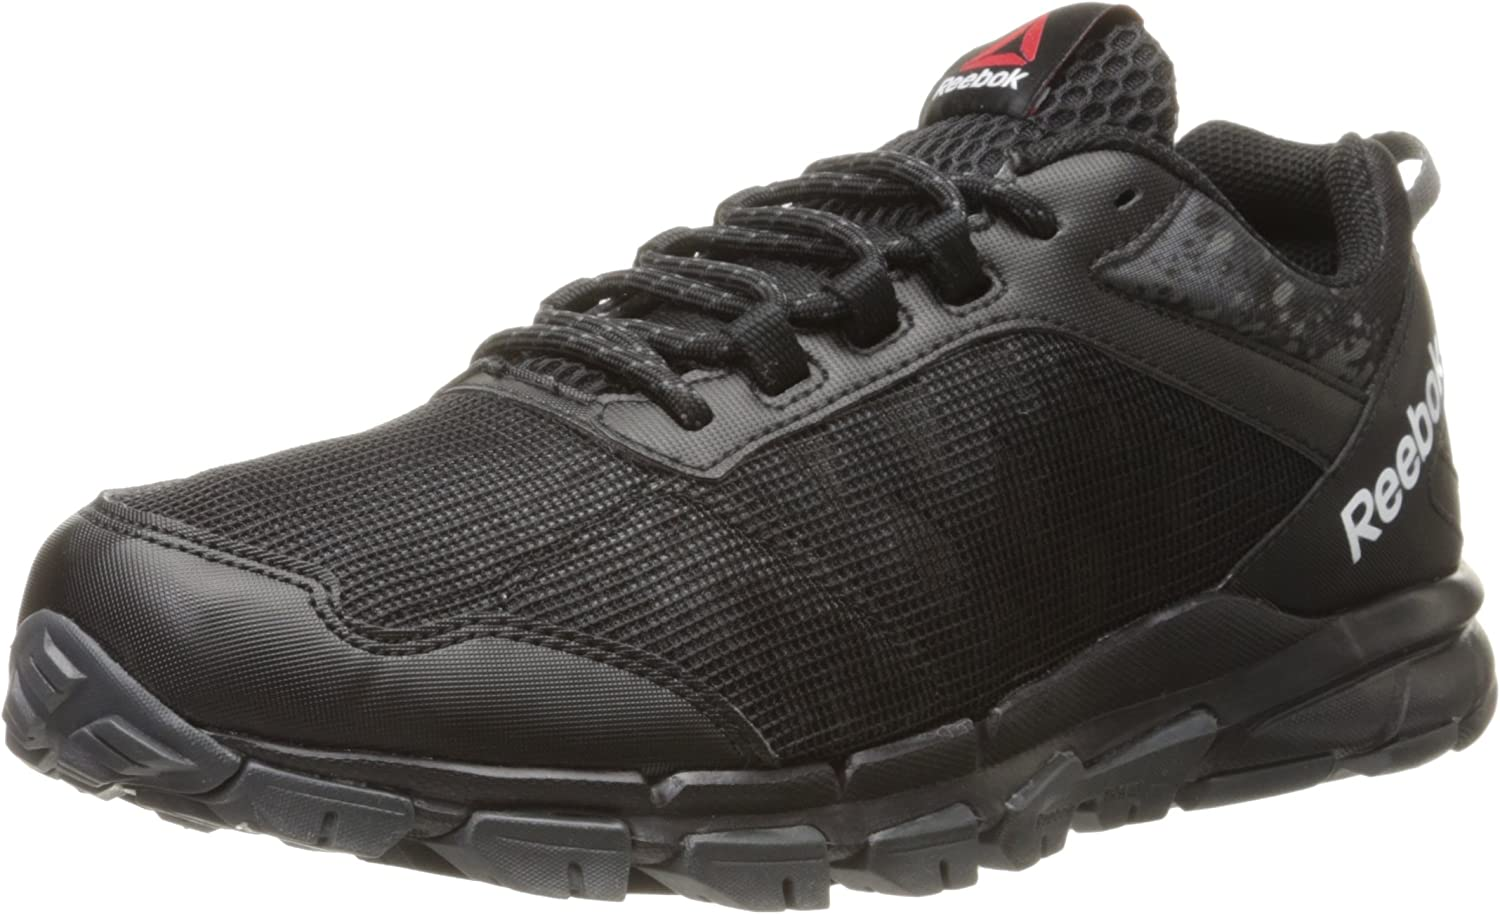 Reebok Men's Trail Warrior Outdoor shoes